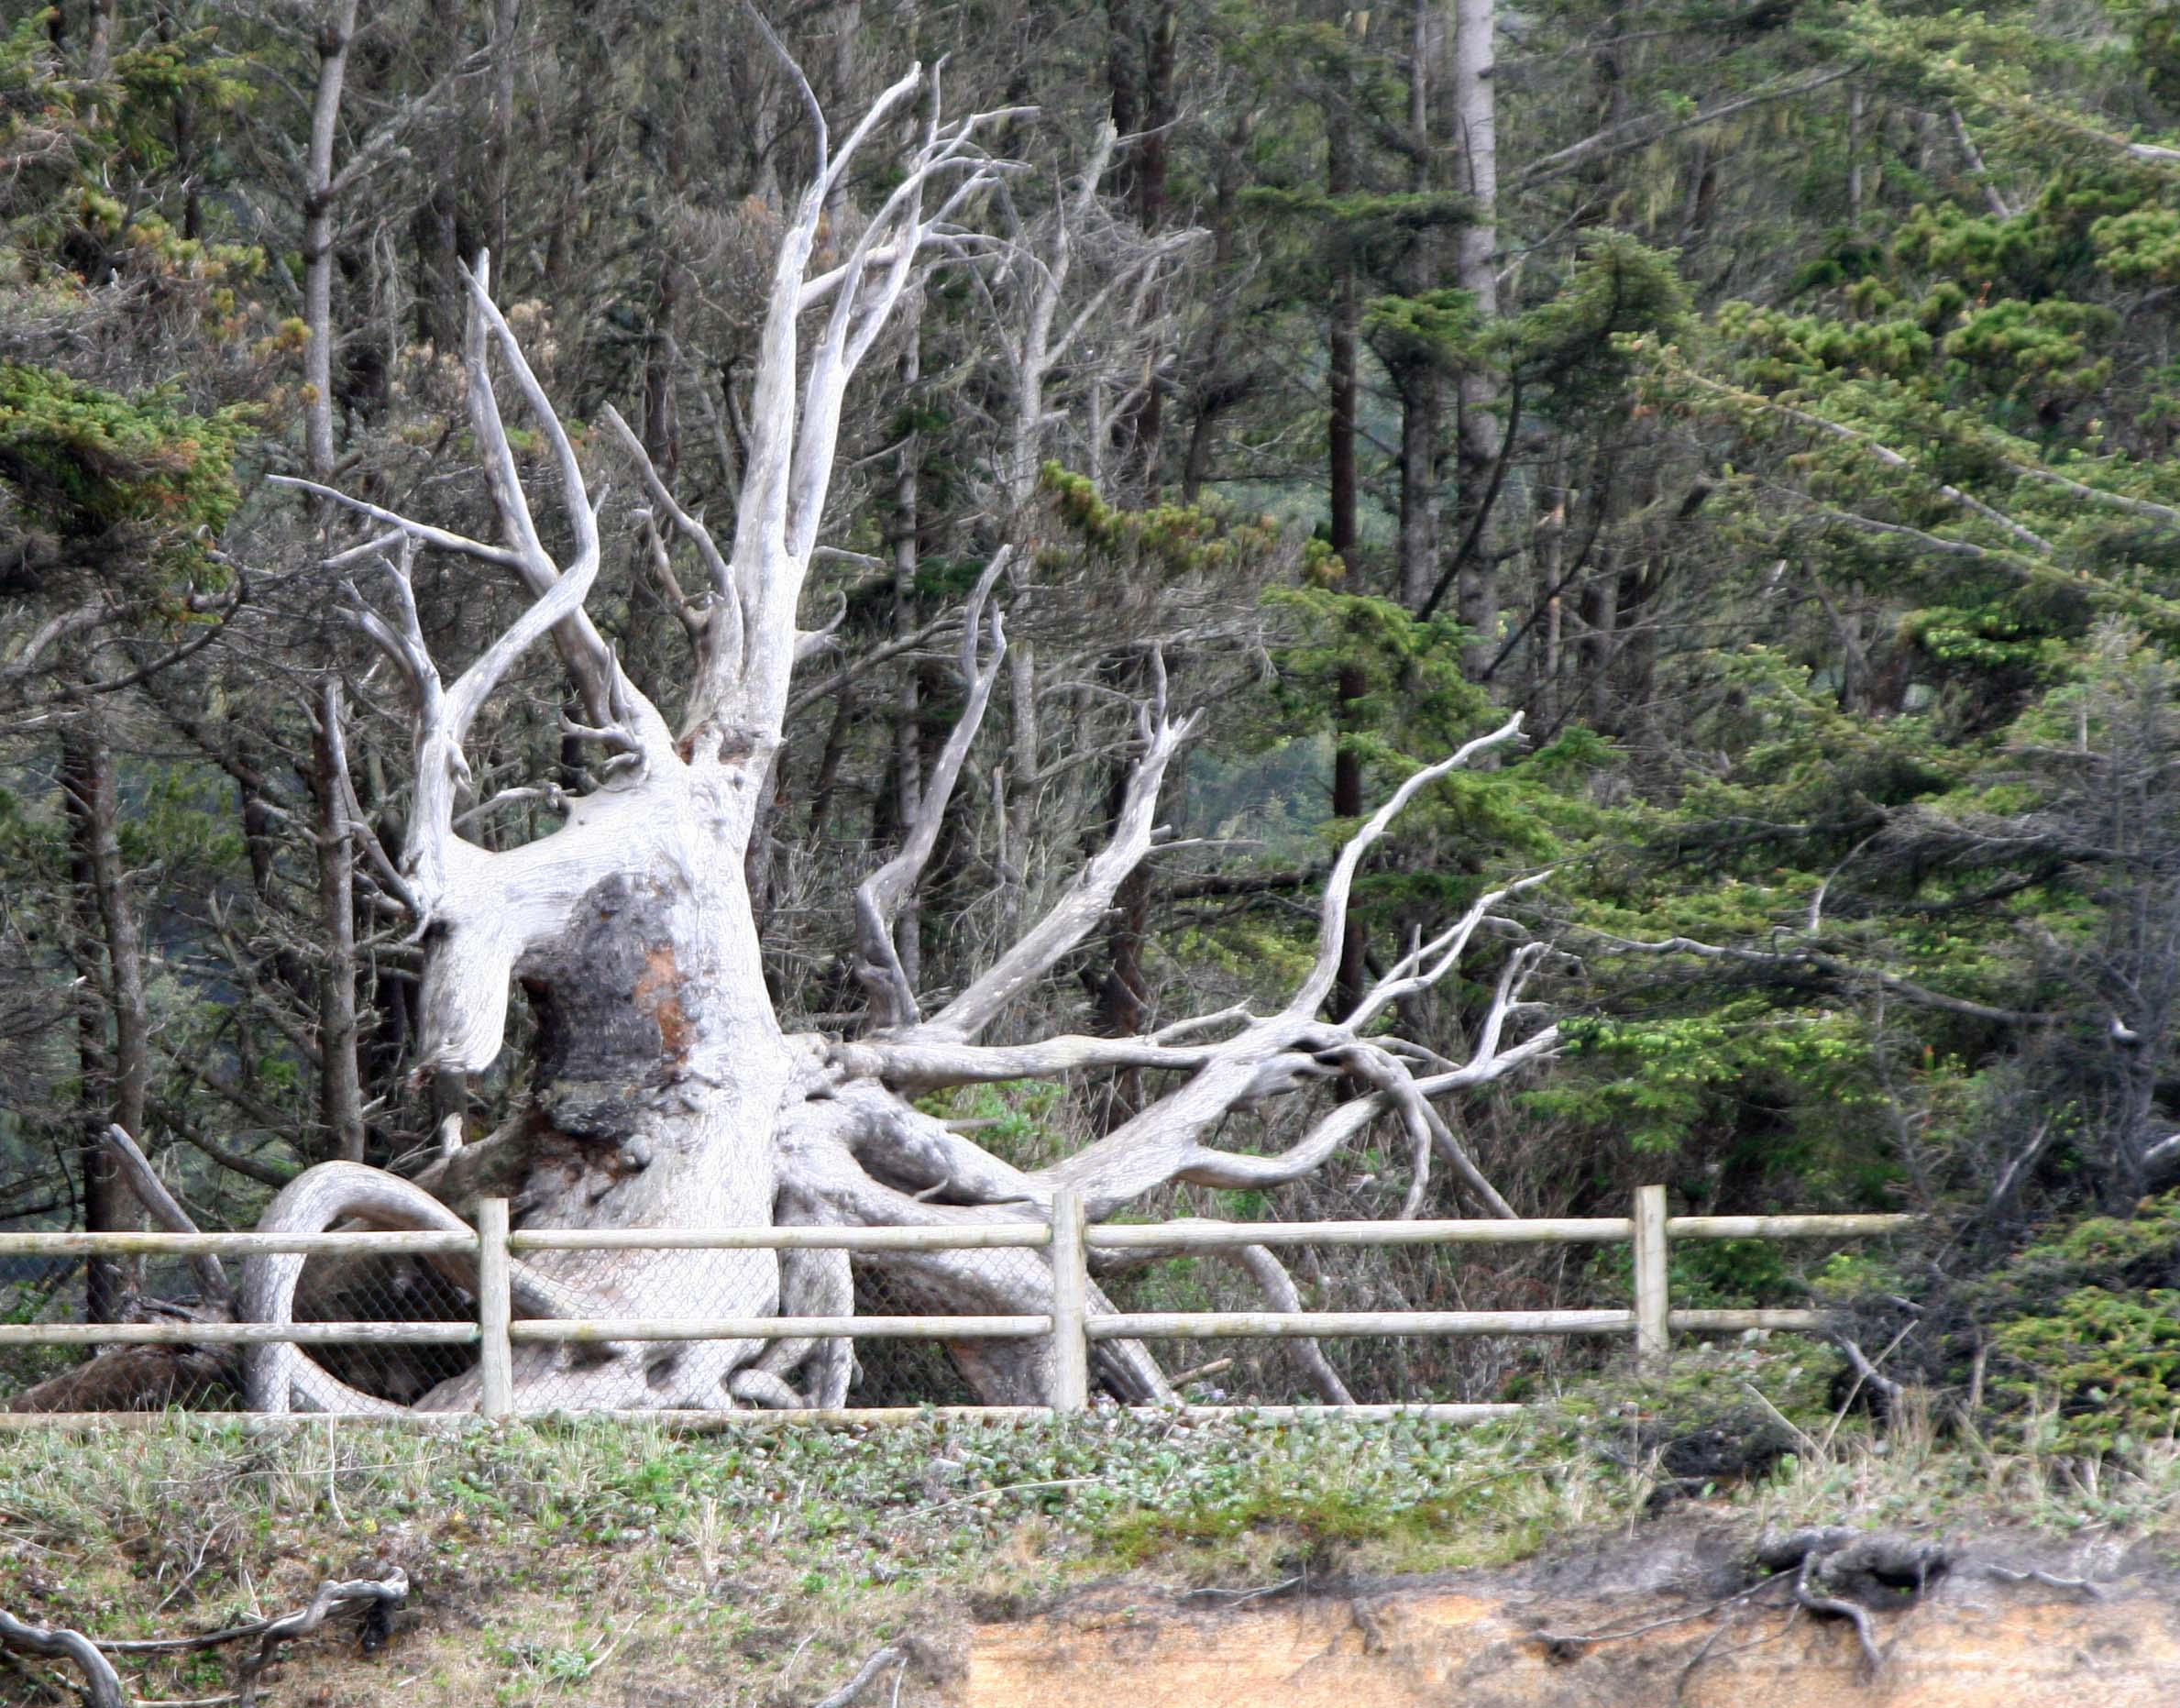 Tree root sculpture on Oregon Coast